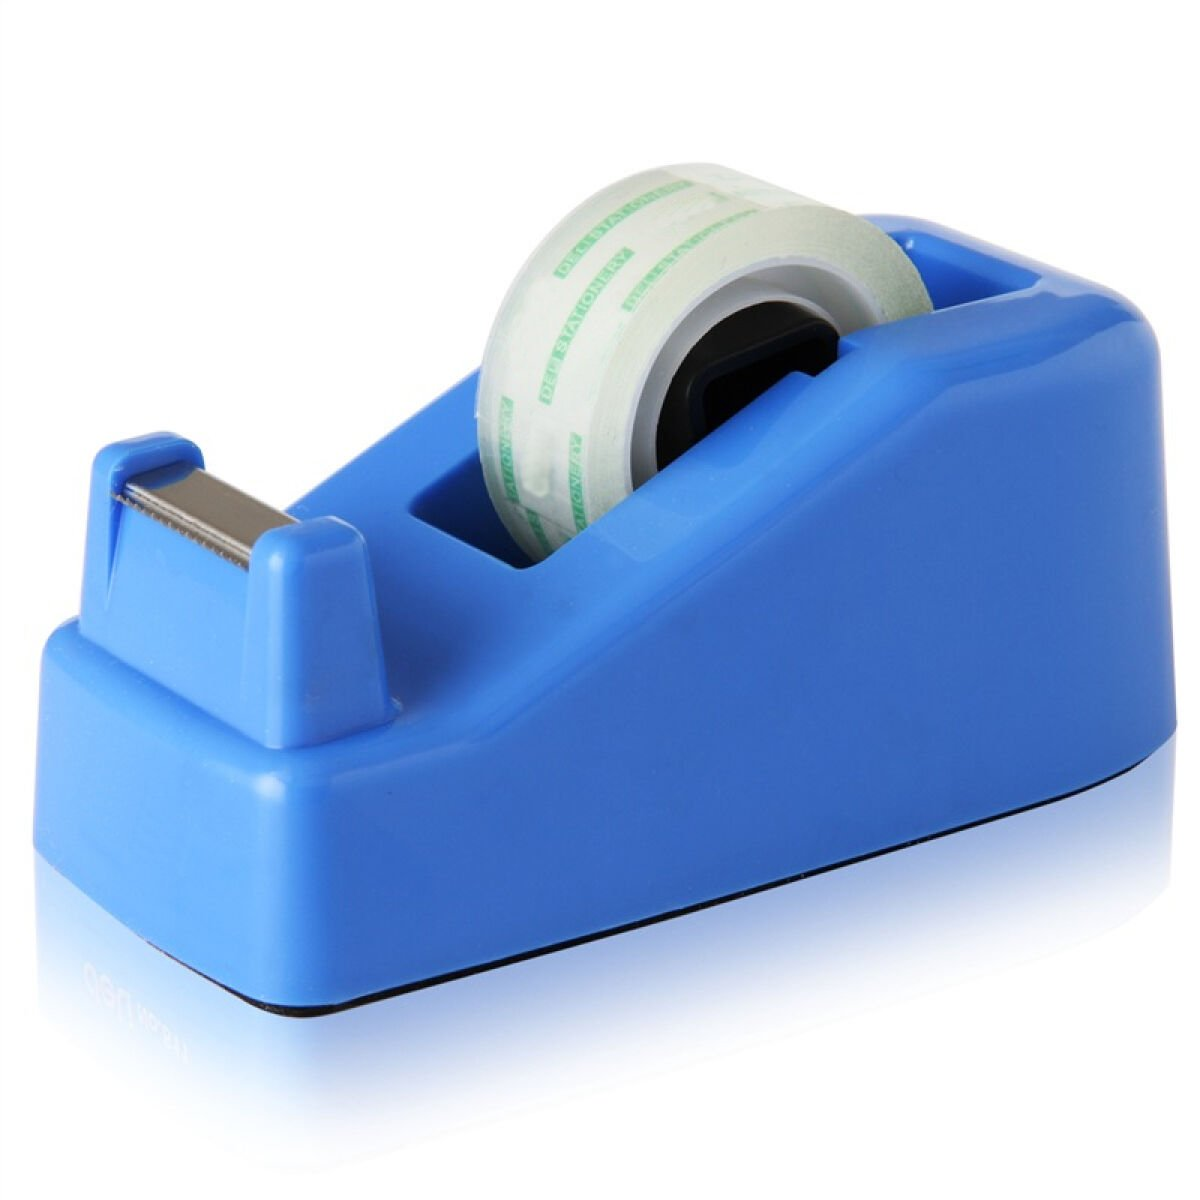 SAYEEC Heavy Duty Tape Dispenser Desk Weighted Non-slip Capacity 18mm Width - With 1 Roll of Tape Supplied - Small/Blue